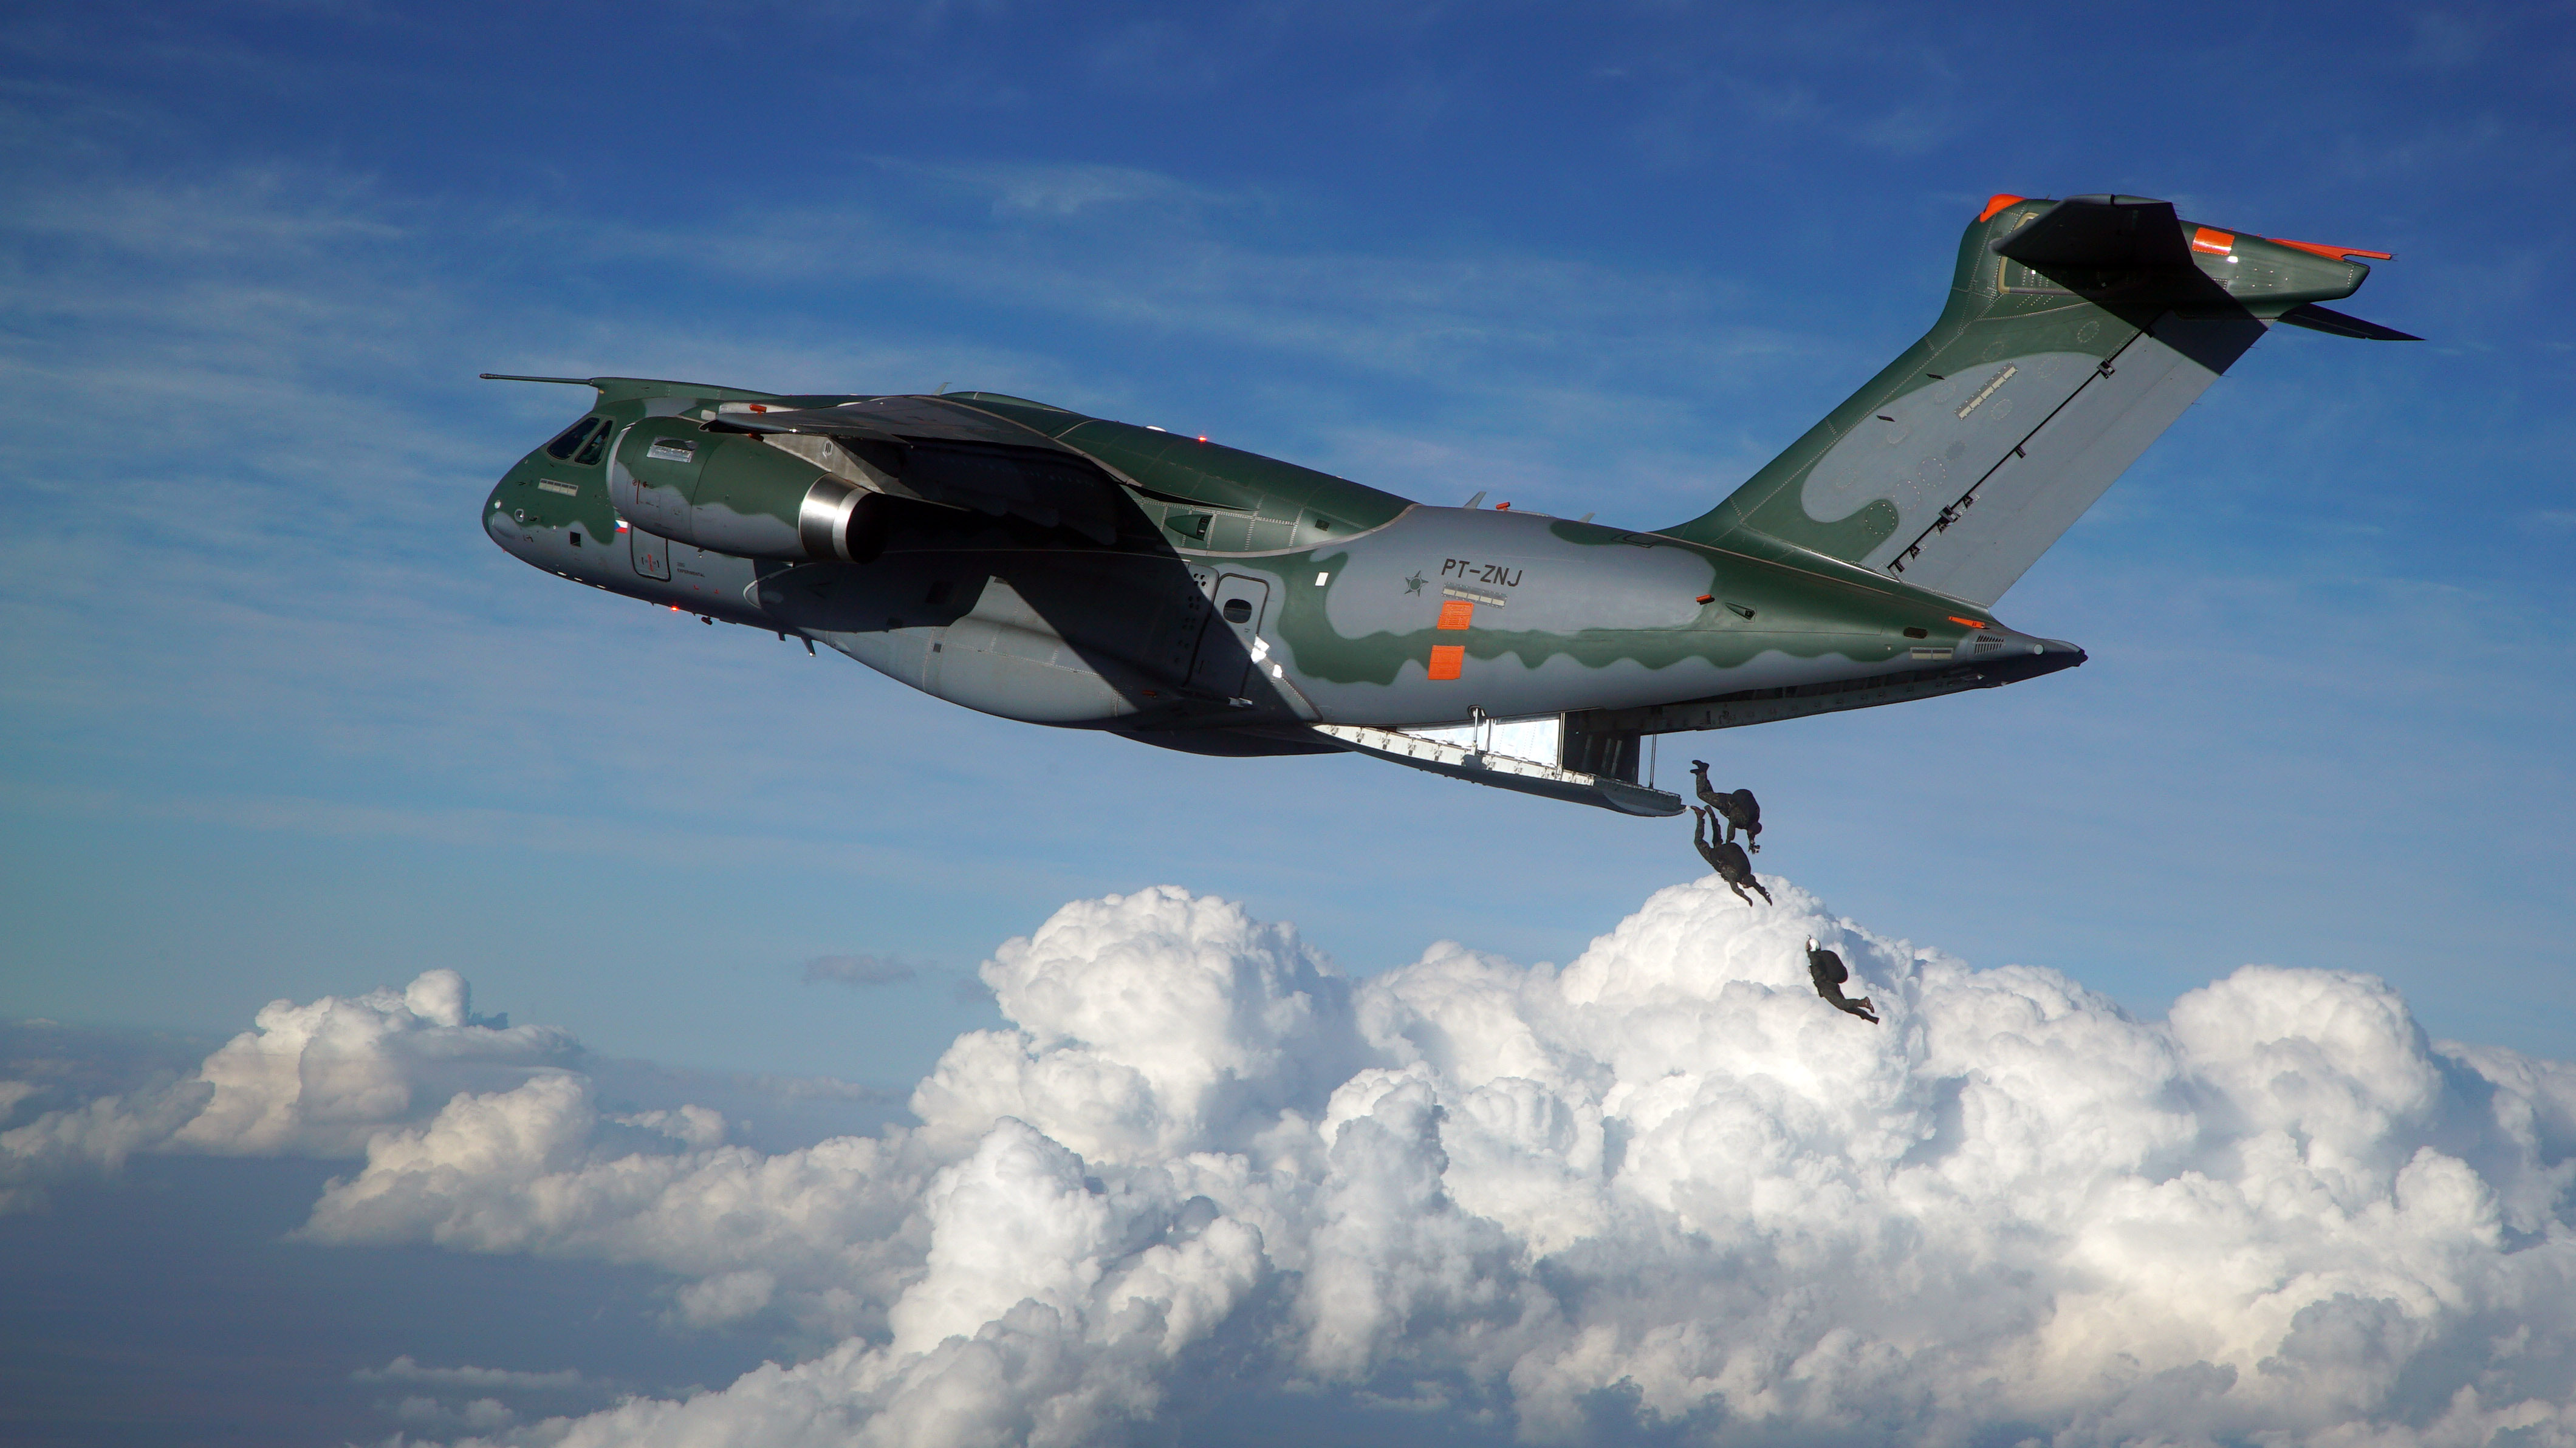 The Embraer Kc 390 Taking On The Heavy Weights Article